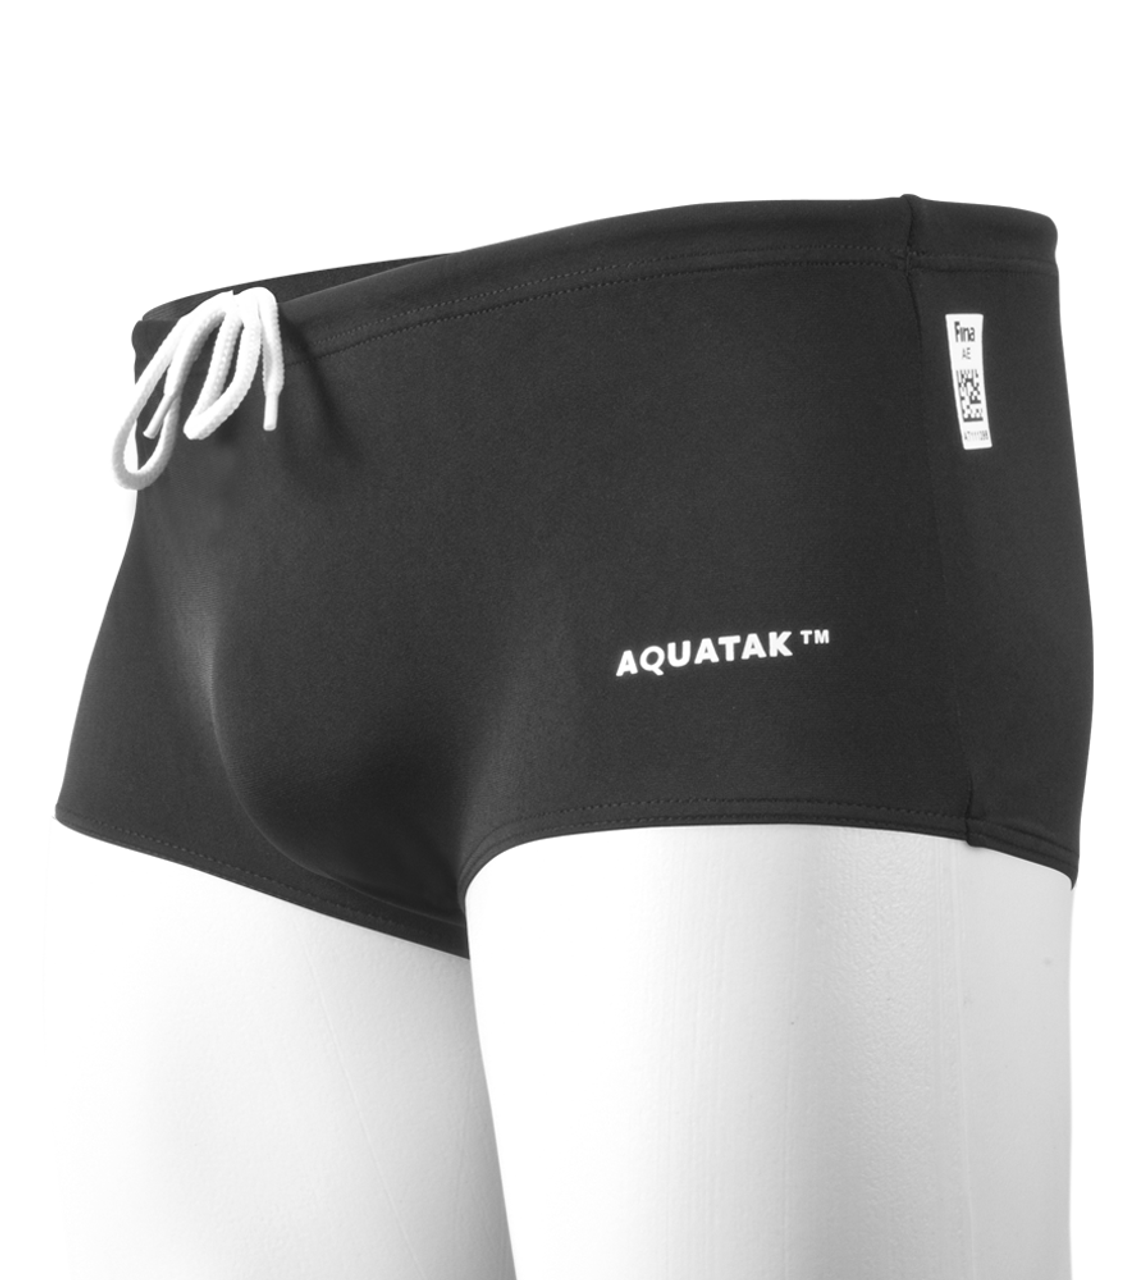 1a31191fc Men's Black Swim Trunks - FINA Approved Racing Swimsuit for Men